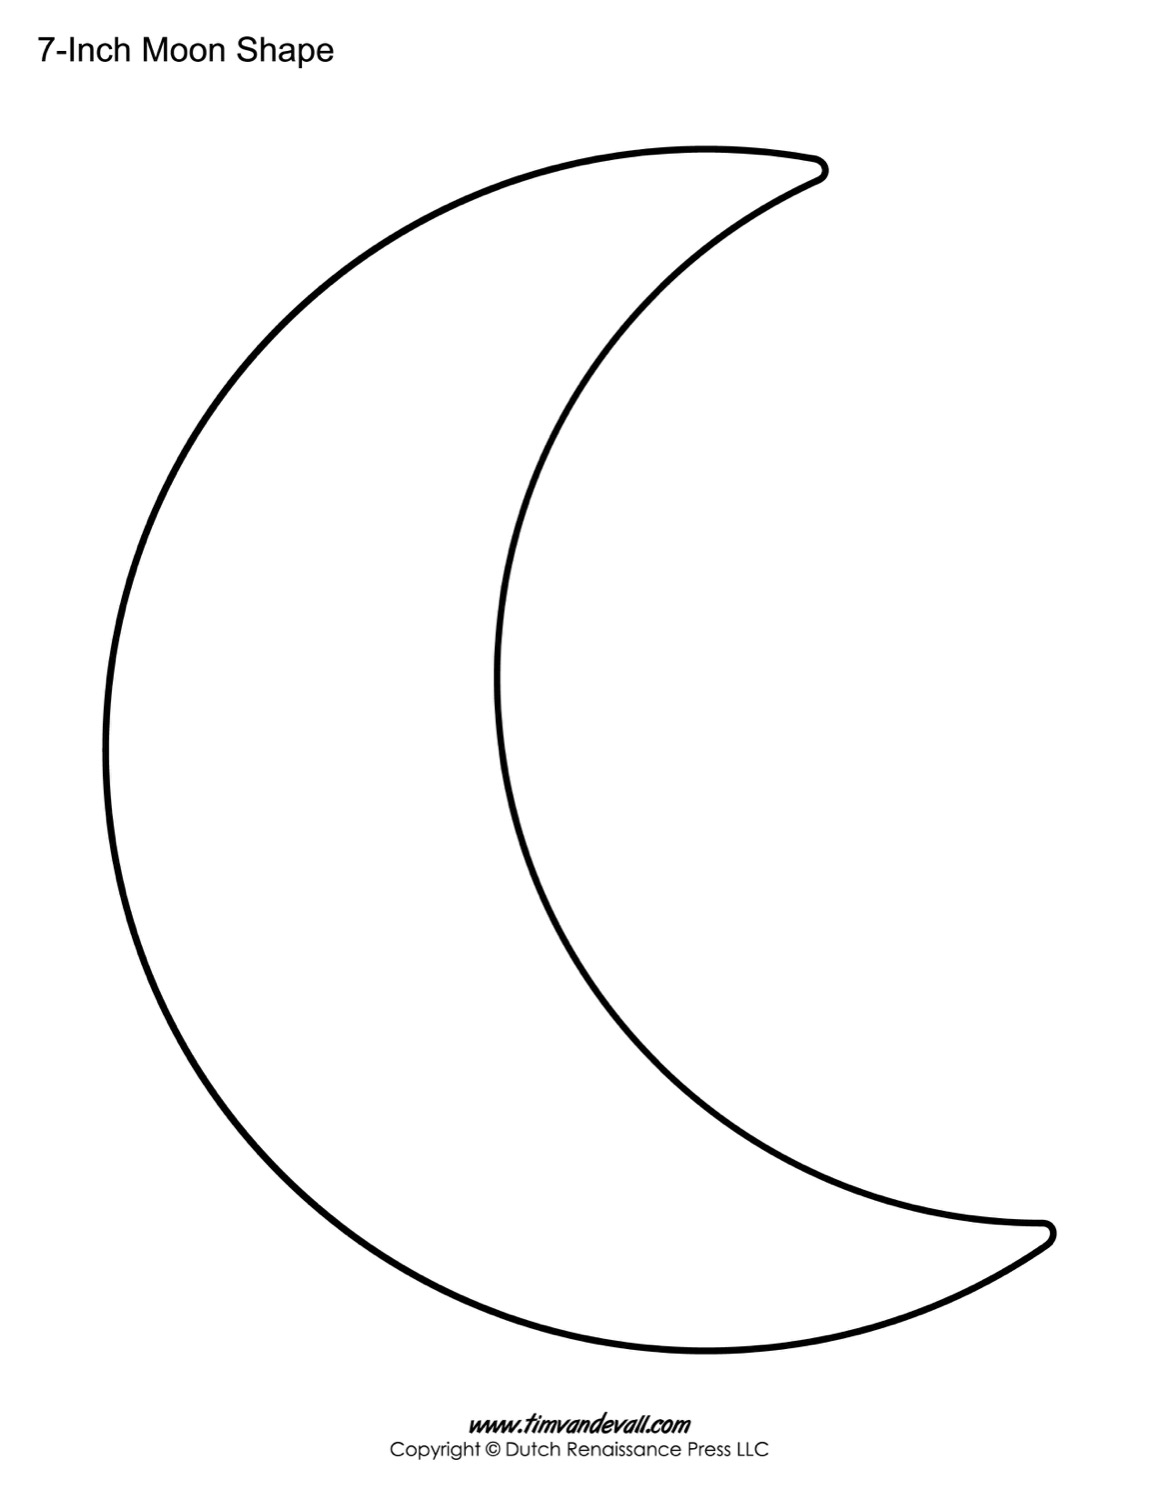 Blank Moon Templates | Printable Moon Shapes